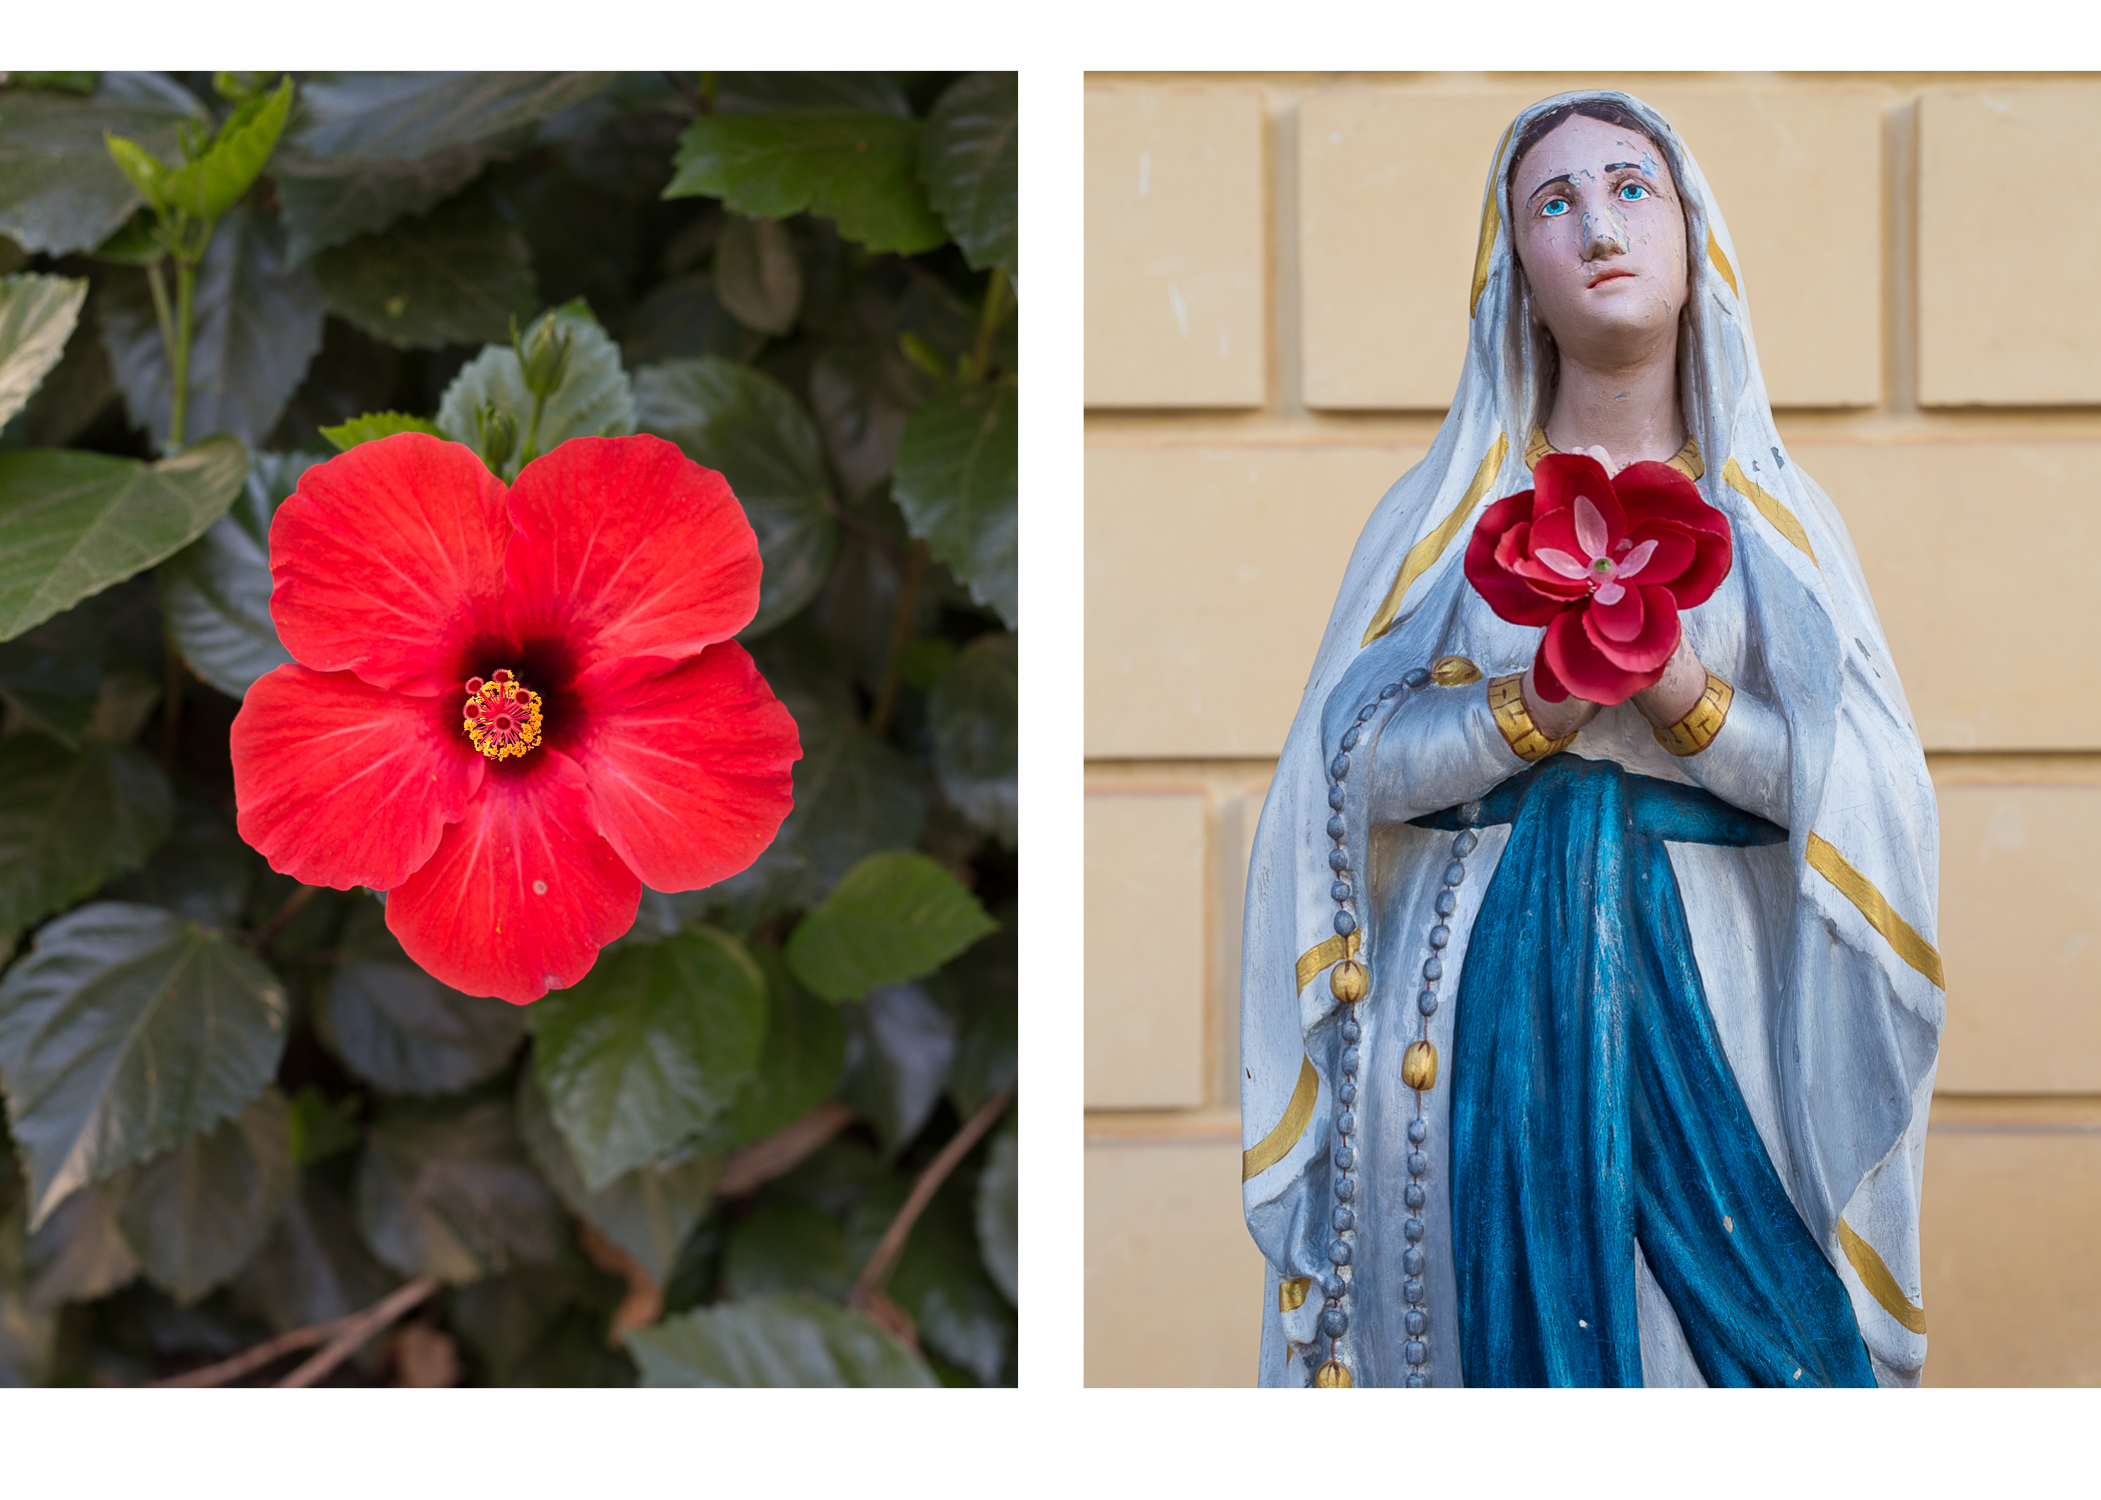 Calypso's Cave ~ Ave Mria & Flower diptych